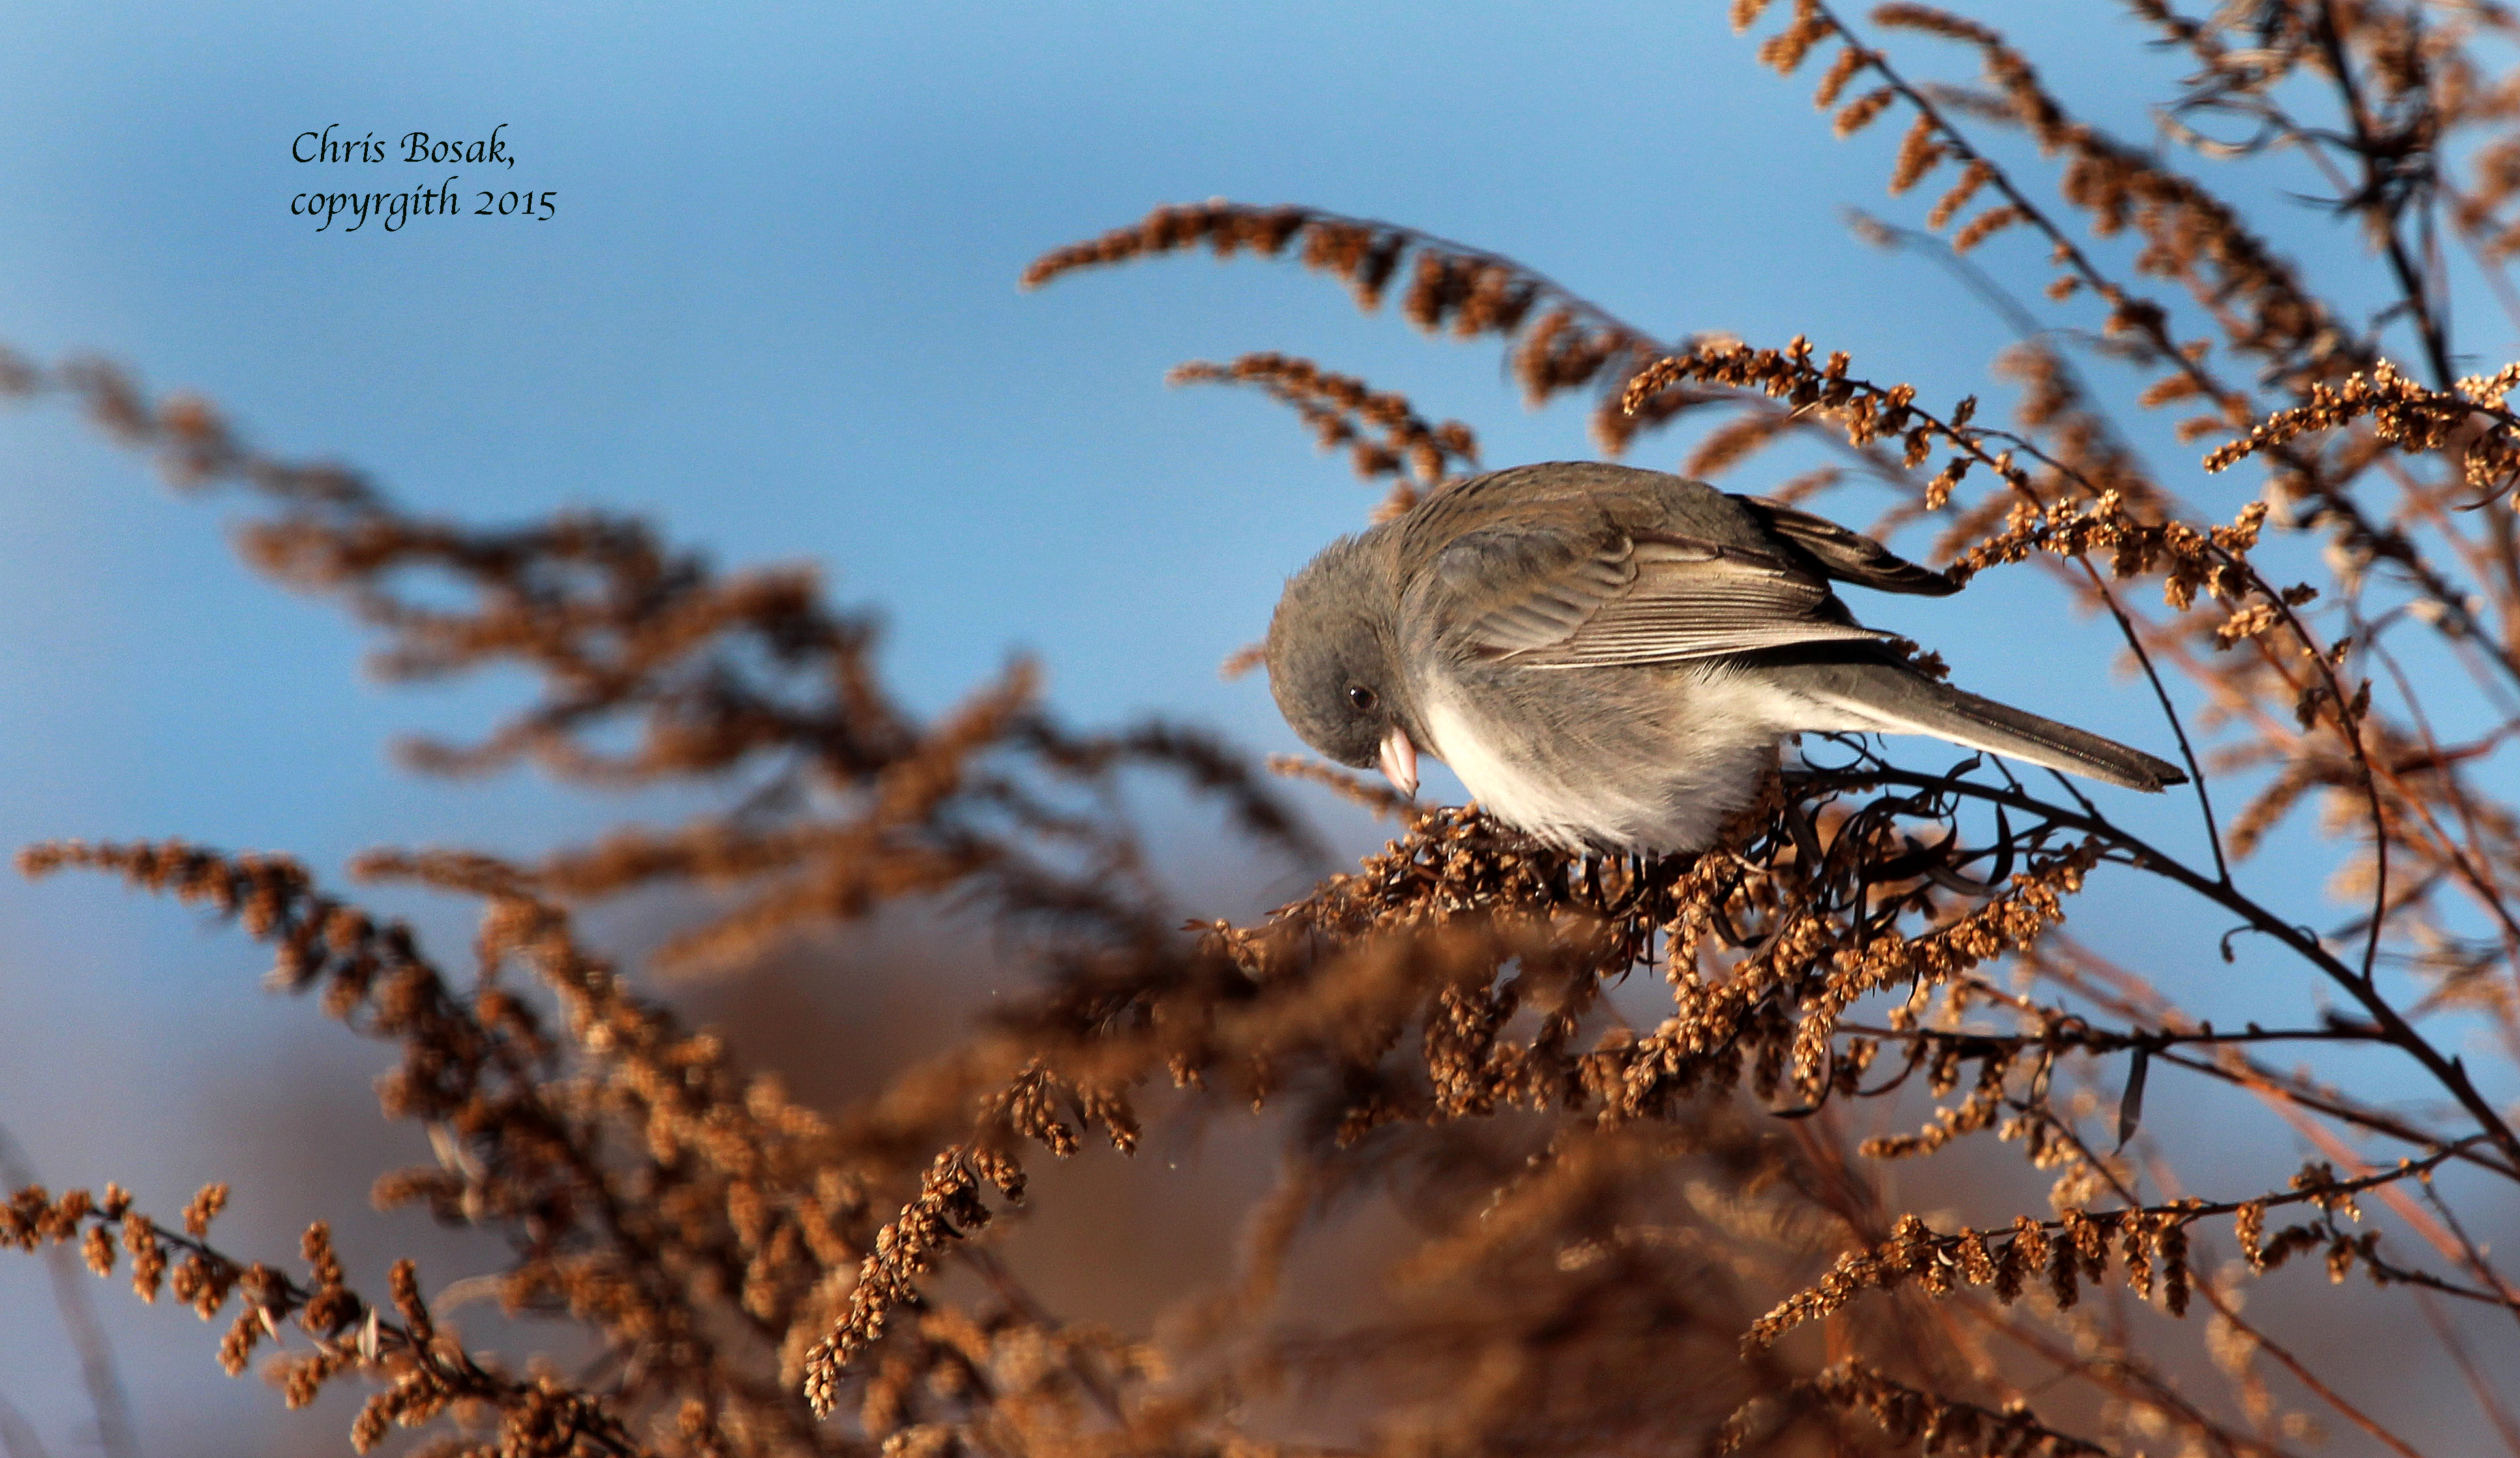 Photo by Chris Bosak A junco looks for seeds on a dried up plant at Weed Beach in Darien, Conn., in Jan. 2015.